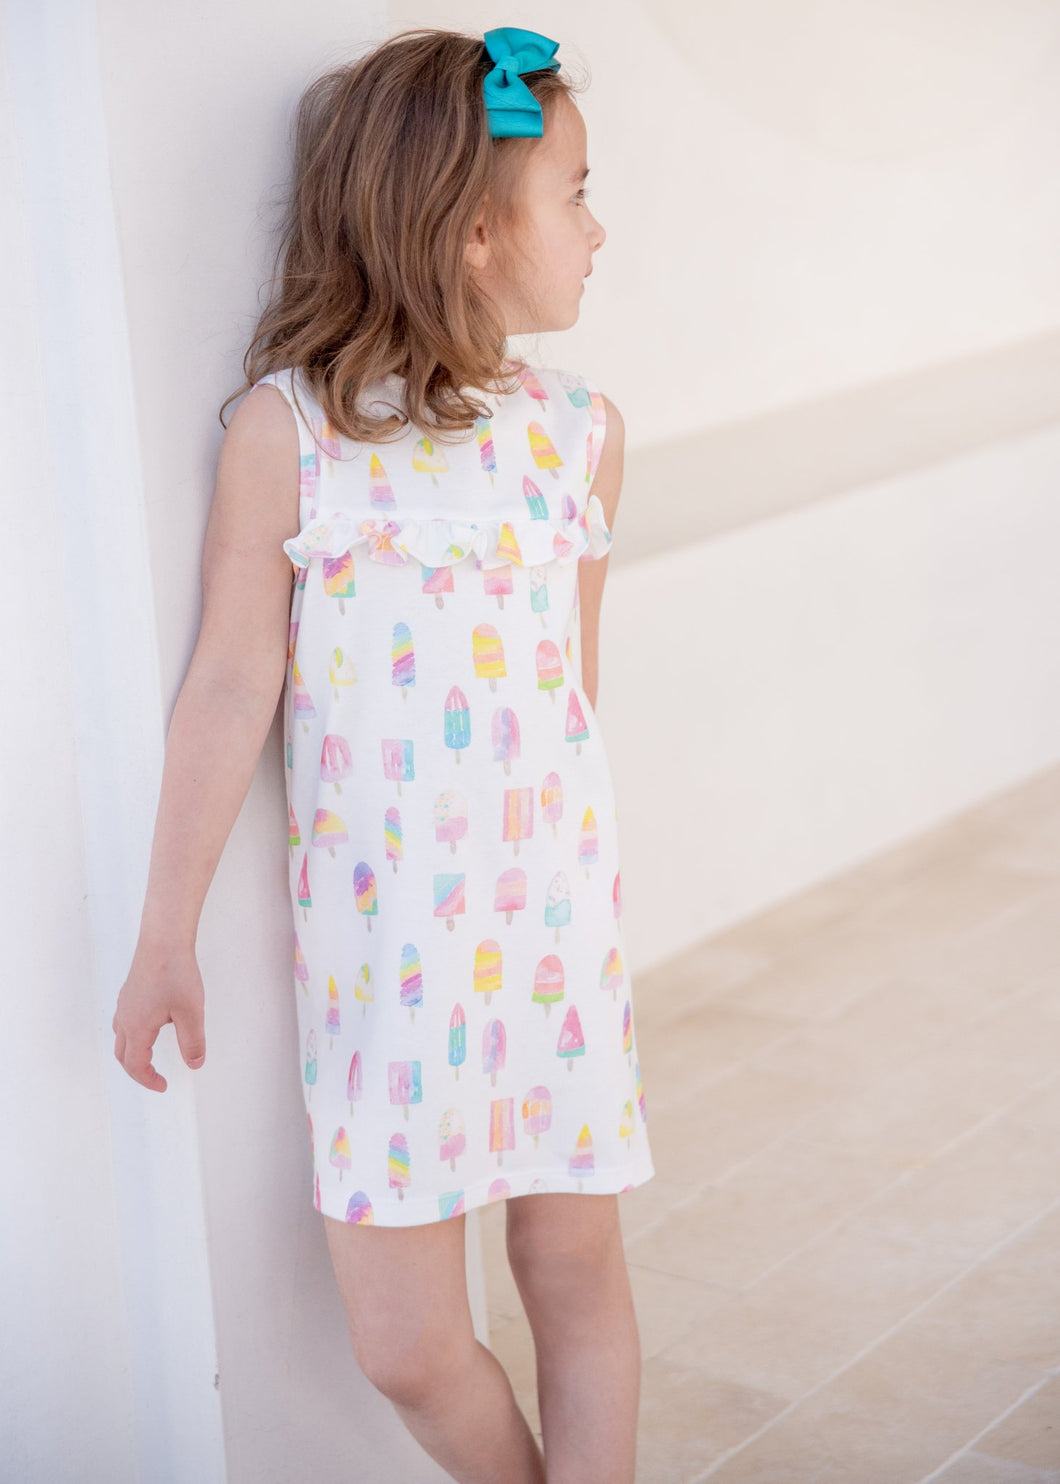 Peggy Knit Popsicle Dress